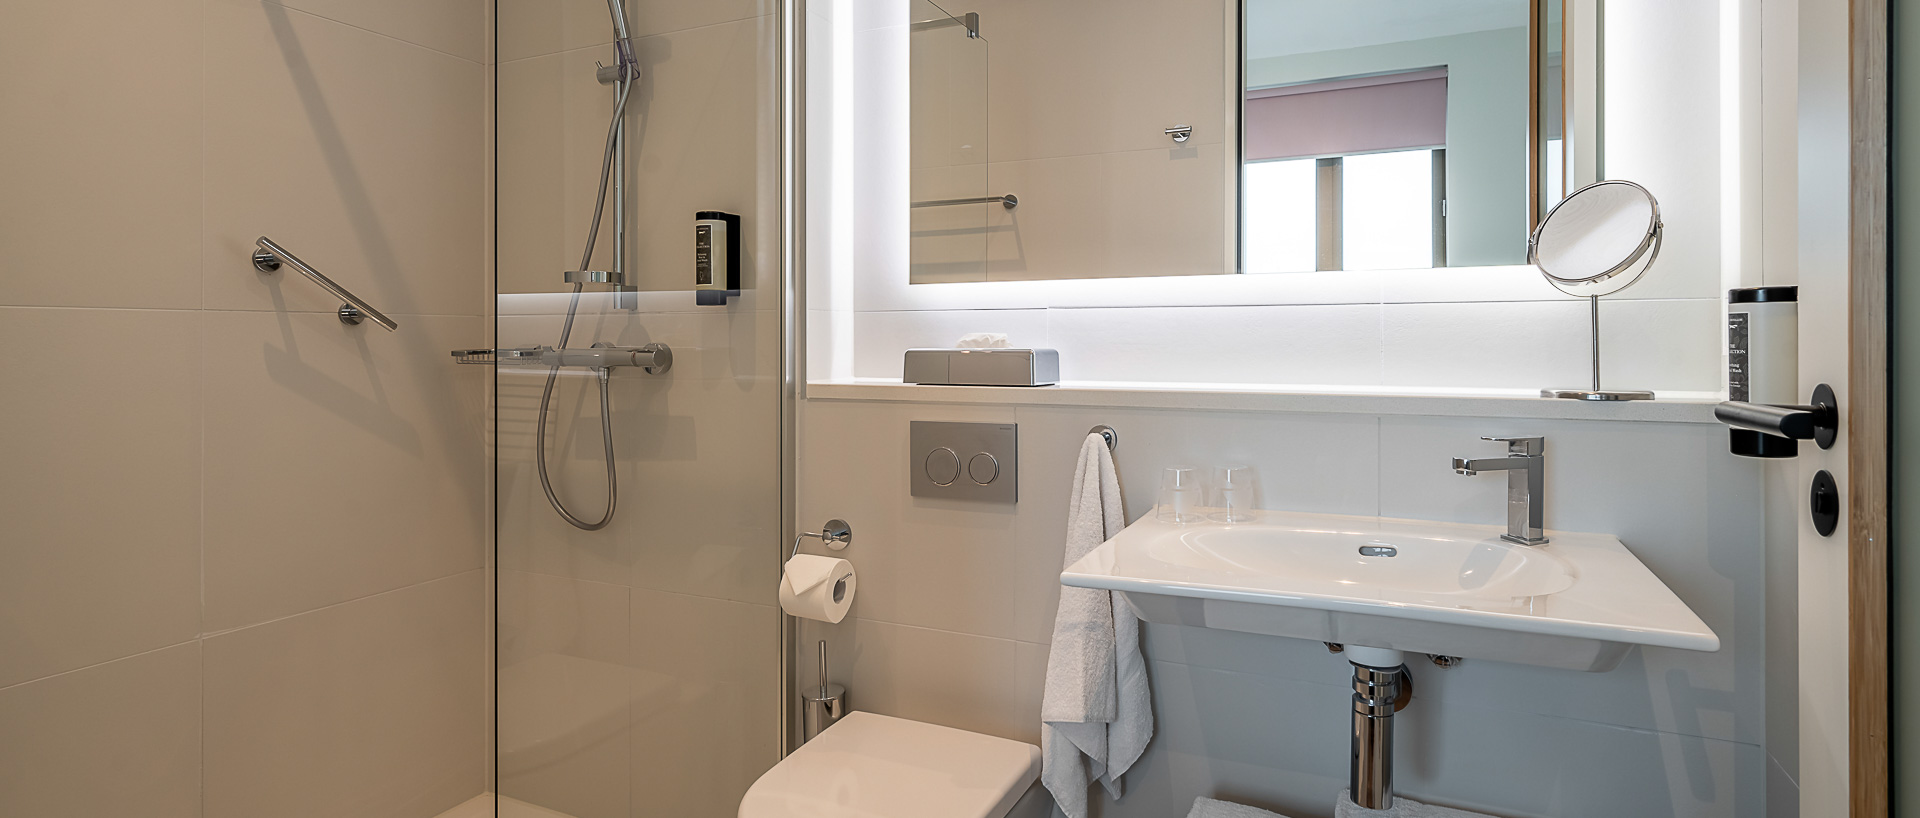 PREMIER SUITES PLUS Amsterdam Bathroom